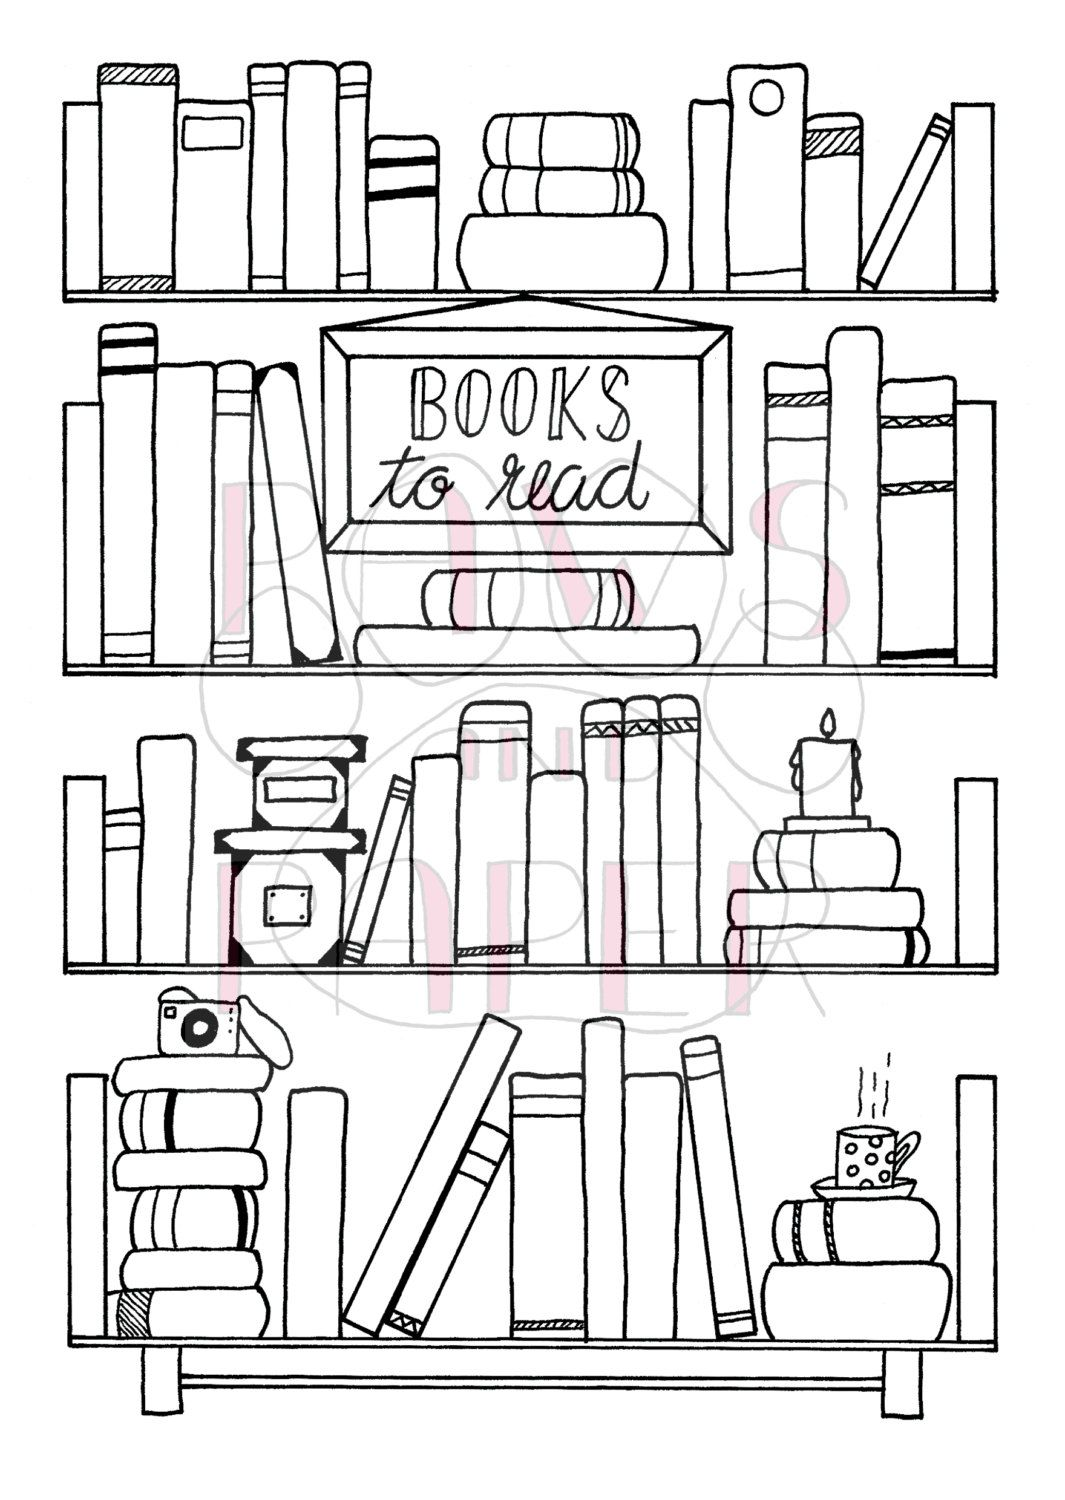 Bullet Journal Book Wishlist Printable Hand Drawn